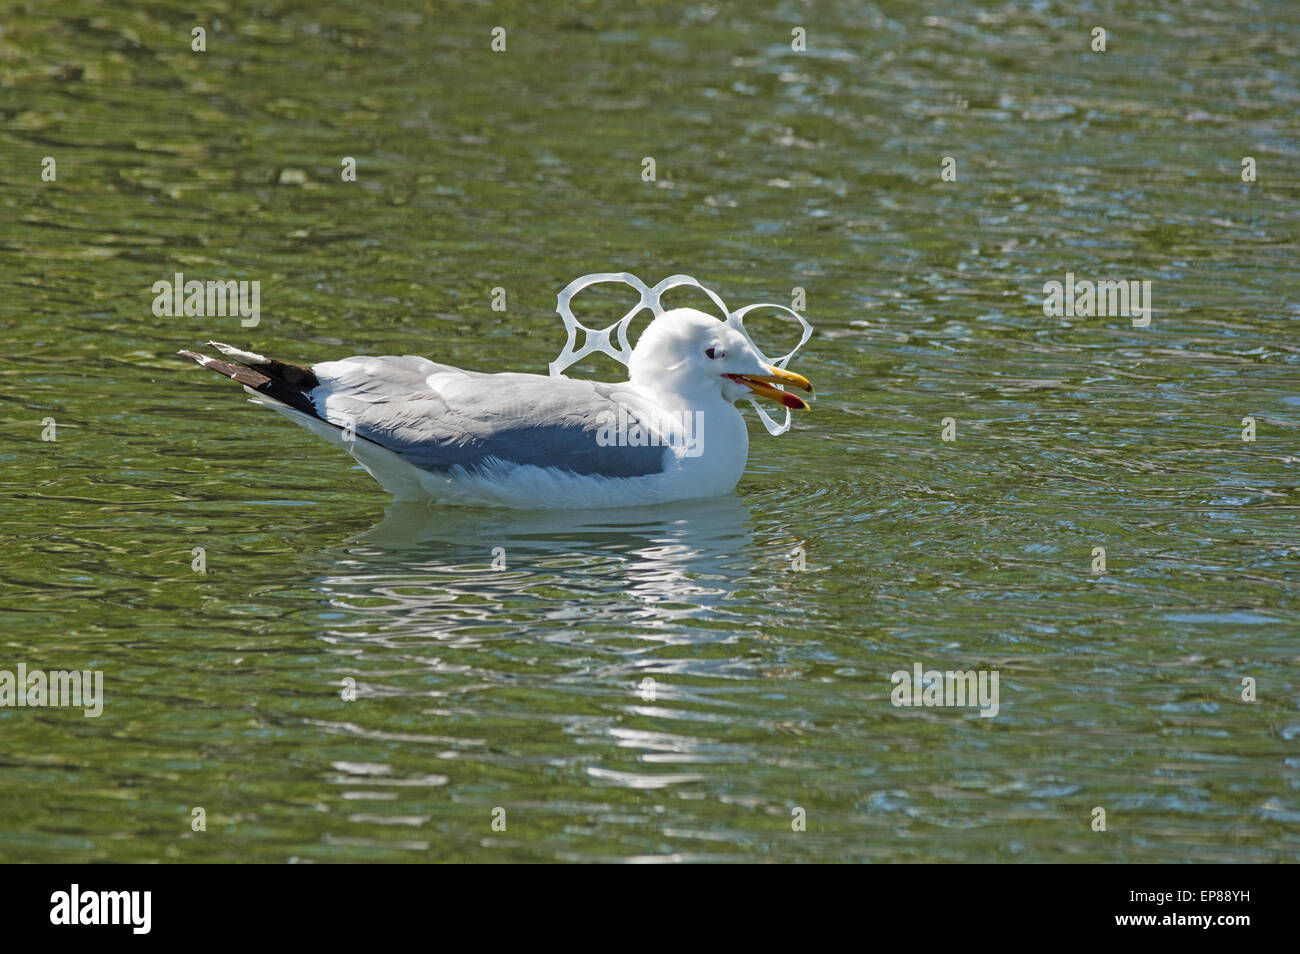 gull with its head caught in a plastic six-pack holder pollution - Stock Image